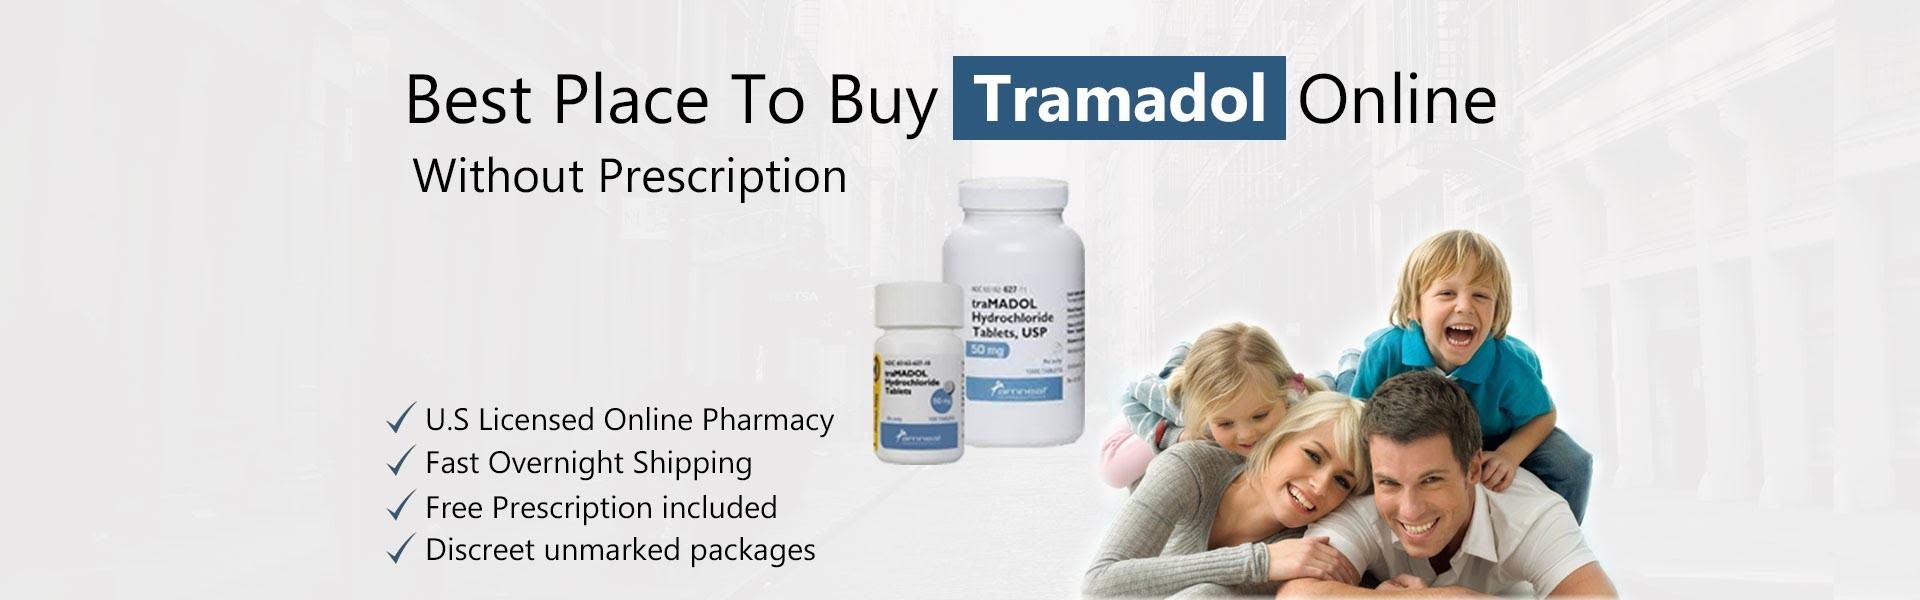 best-place-to-easy-and-simple-of-buying-tramadol-online